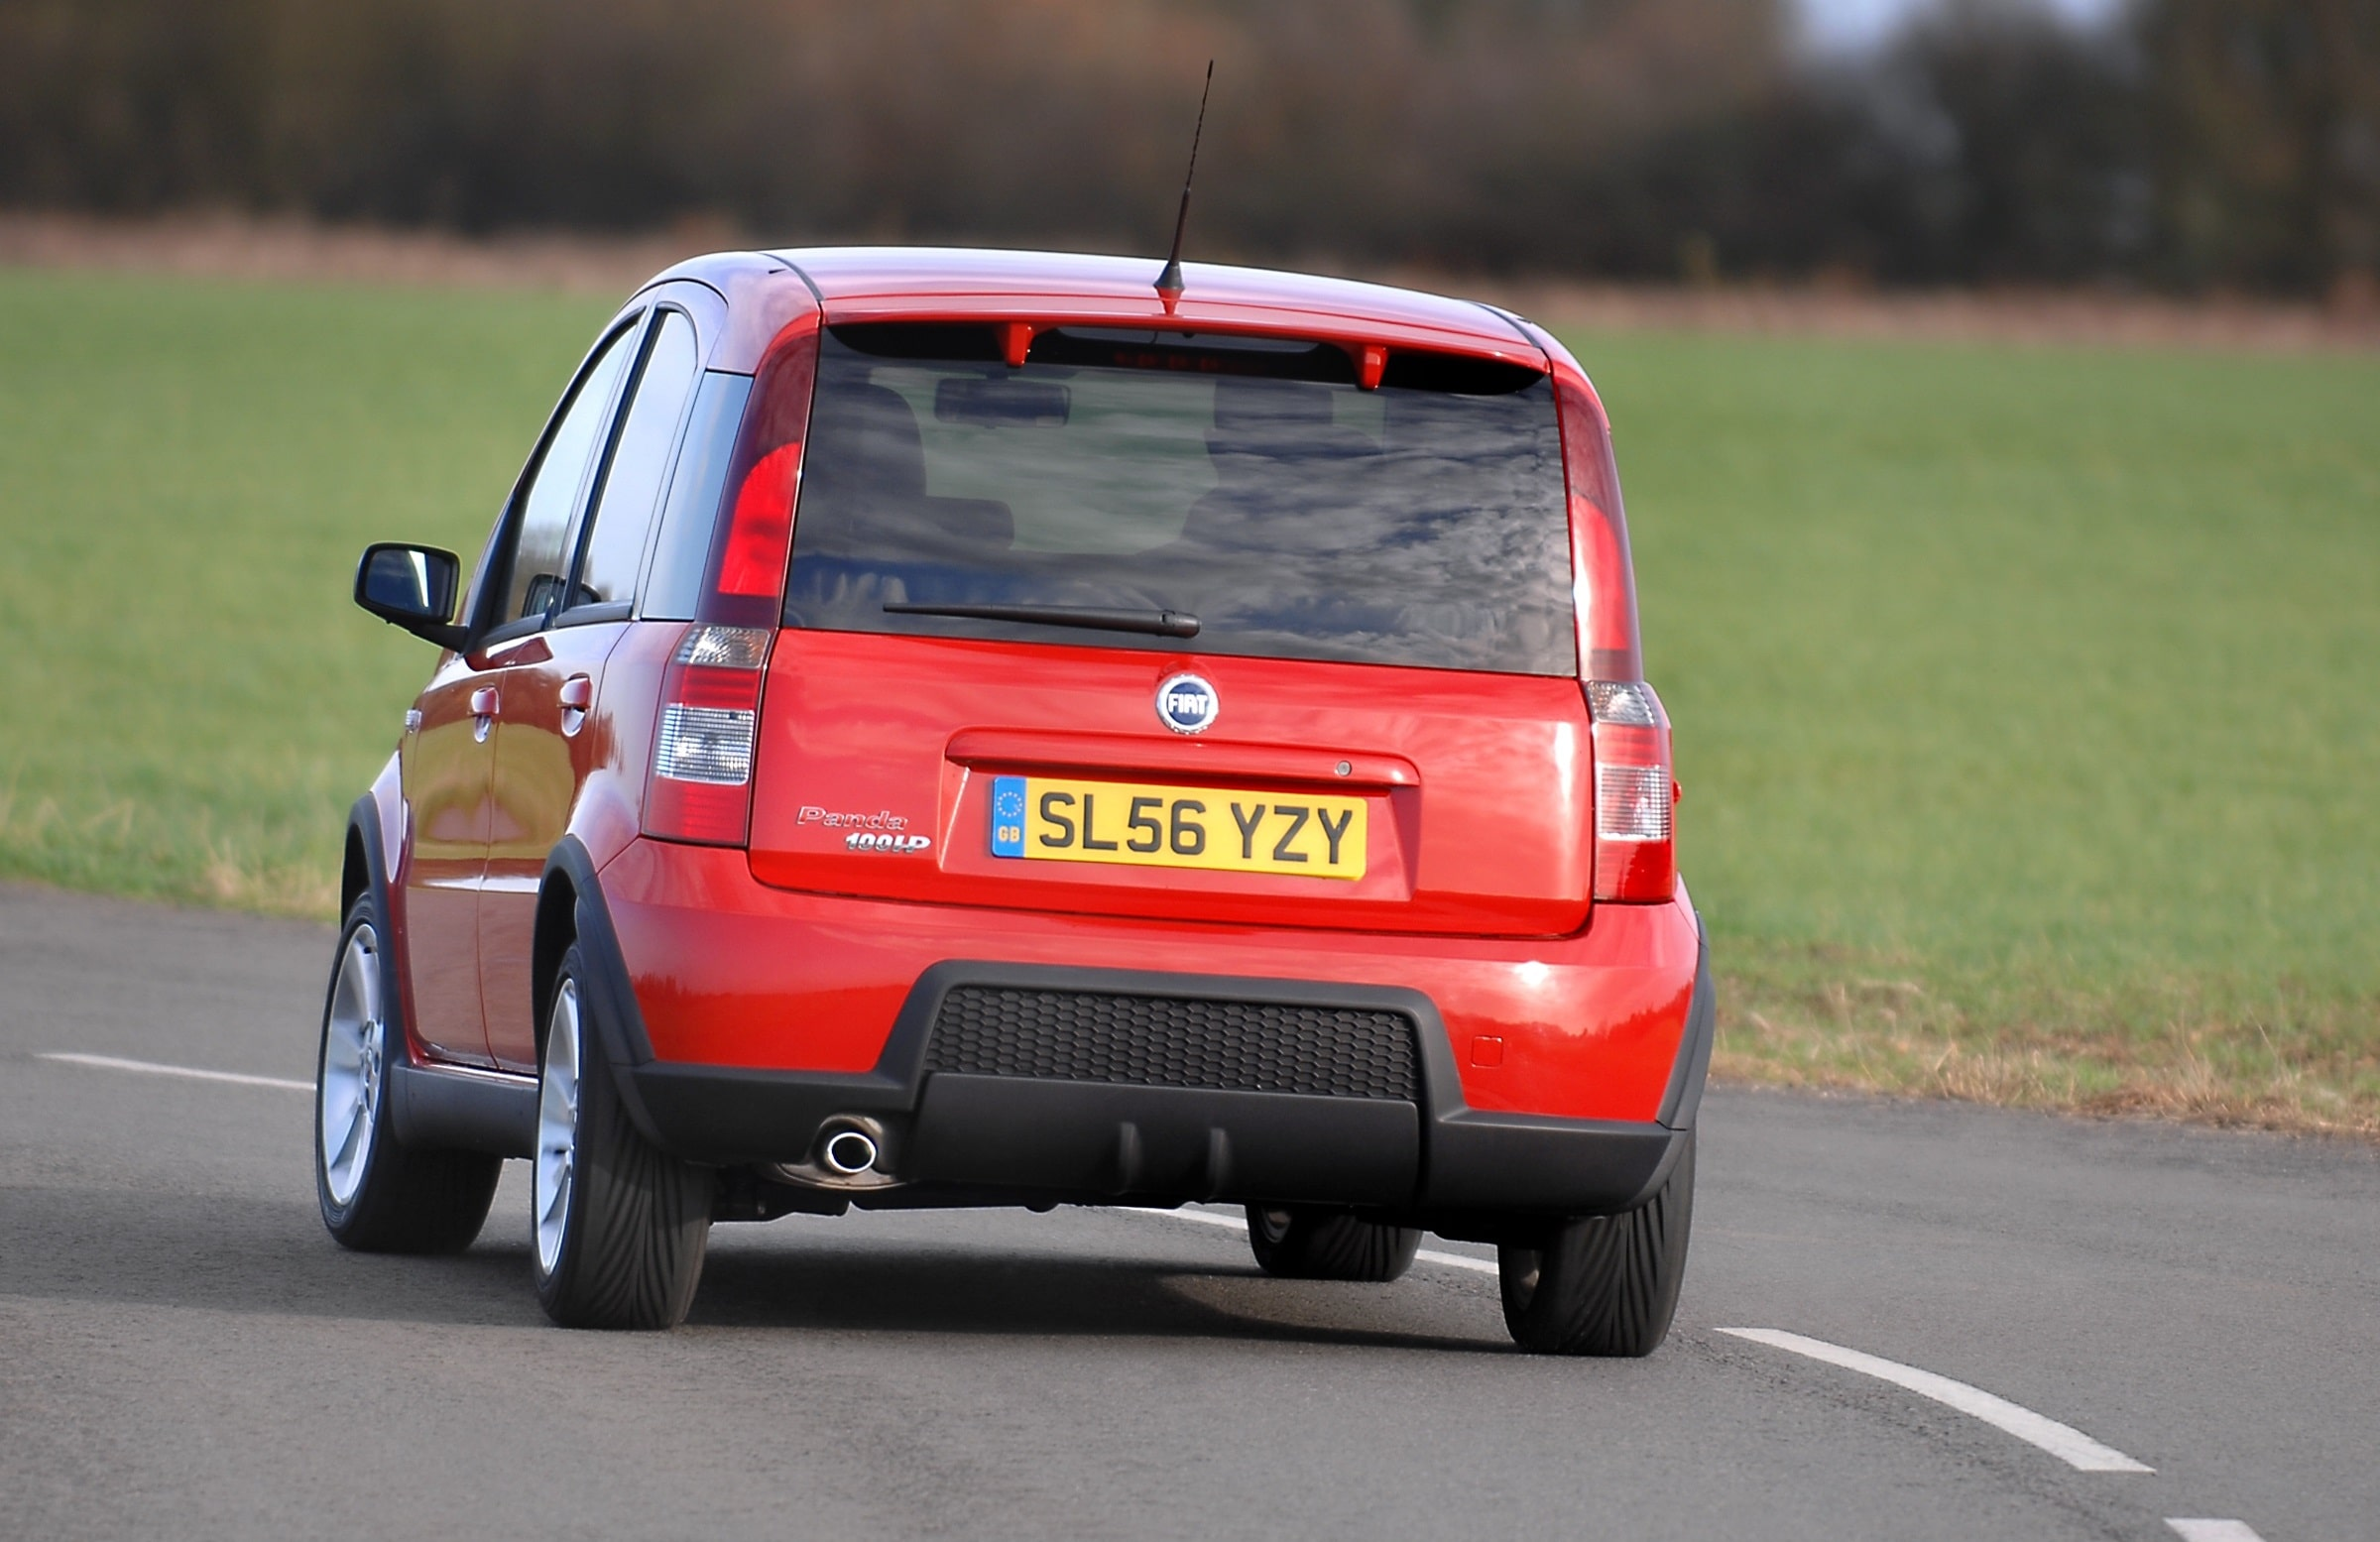 Fiat Panda 100hp, fiat panda, fiat, panda, 100hp, italy, italian car, cars, motoring, automotive, classic car, retro car, hot hatch, fix it again tony, fun car, exciting car, autotrader, fiat sales,